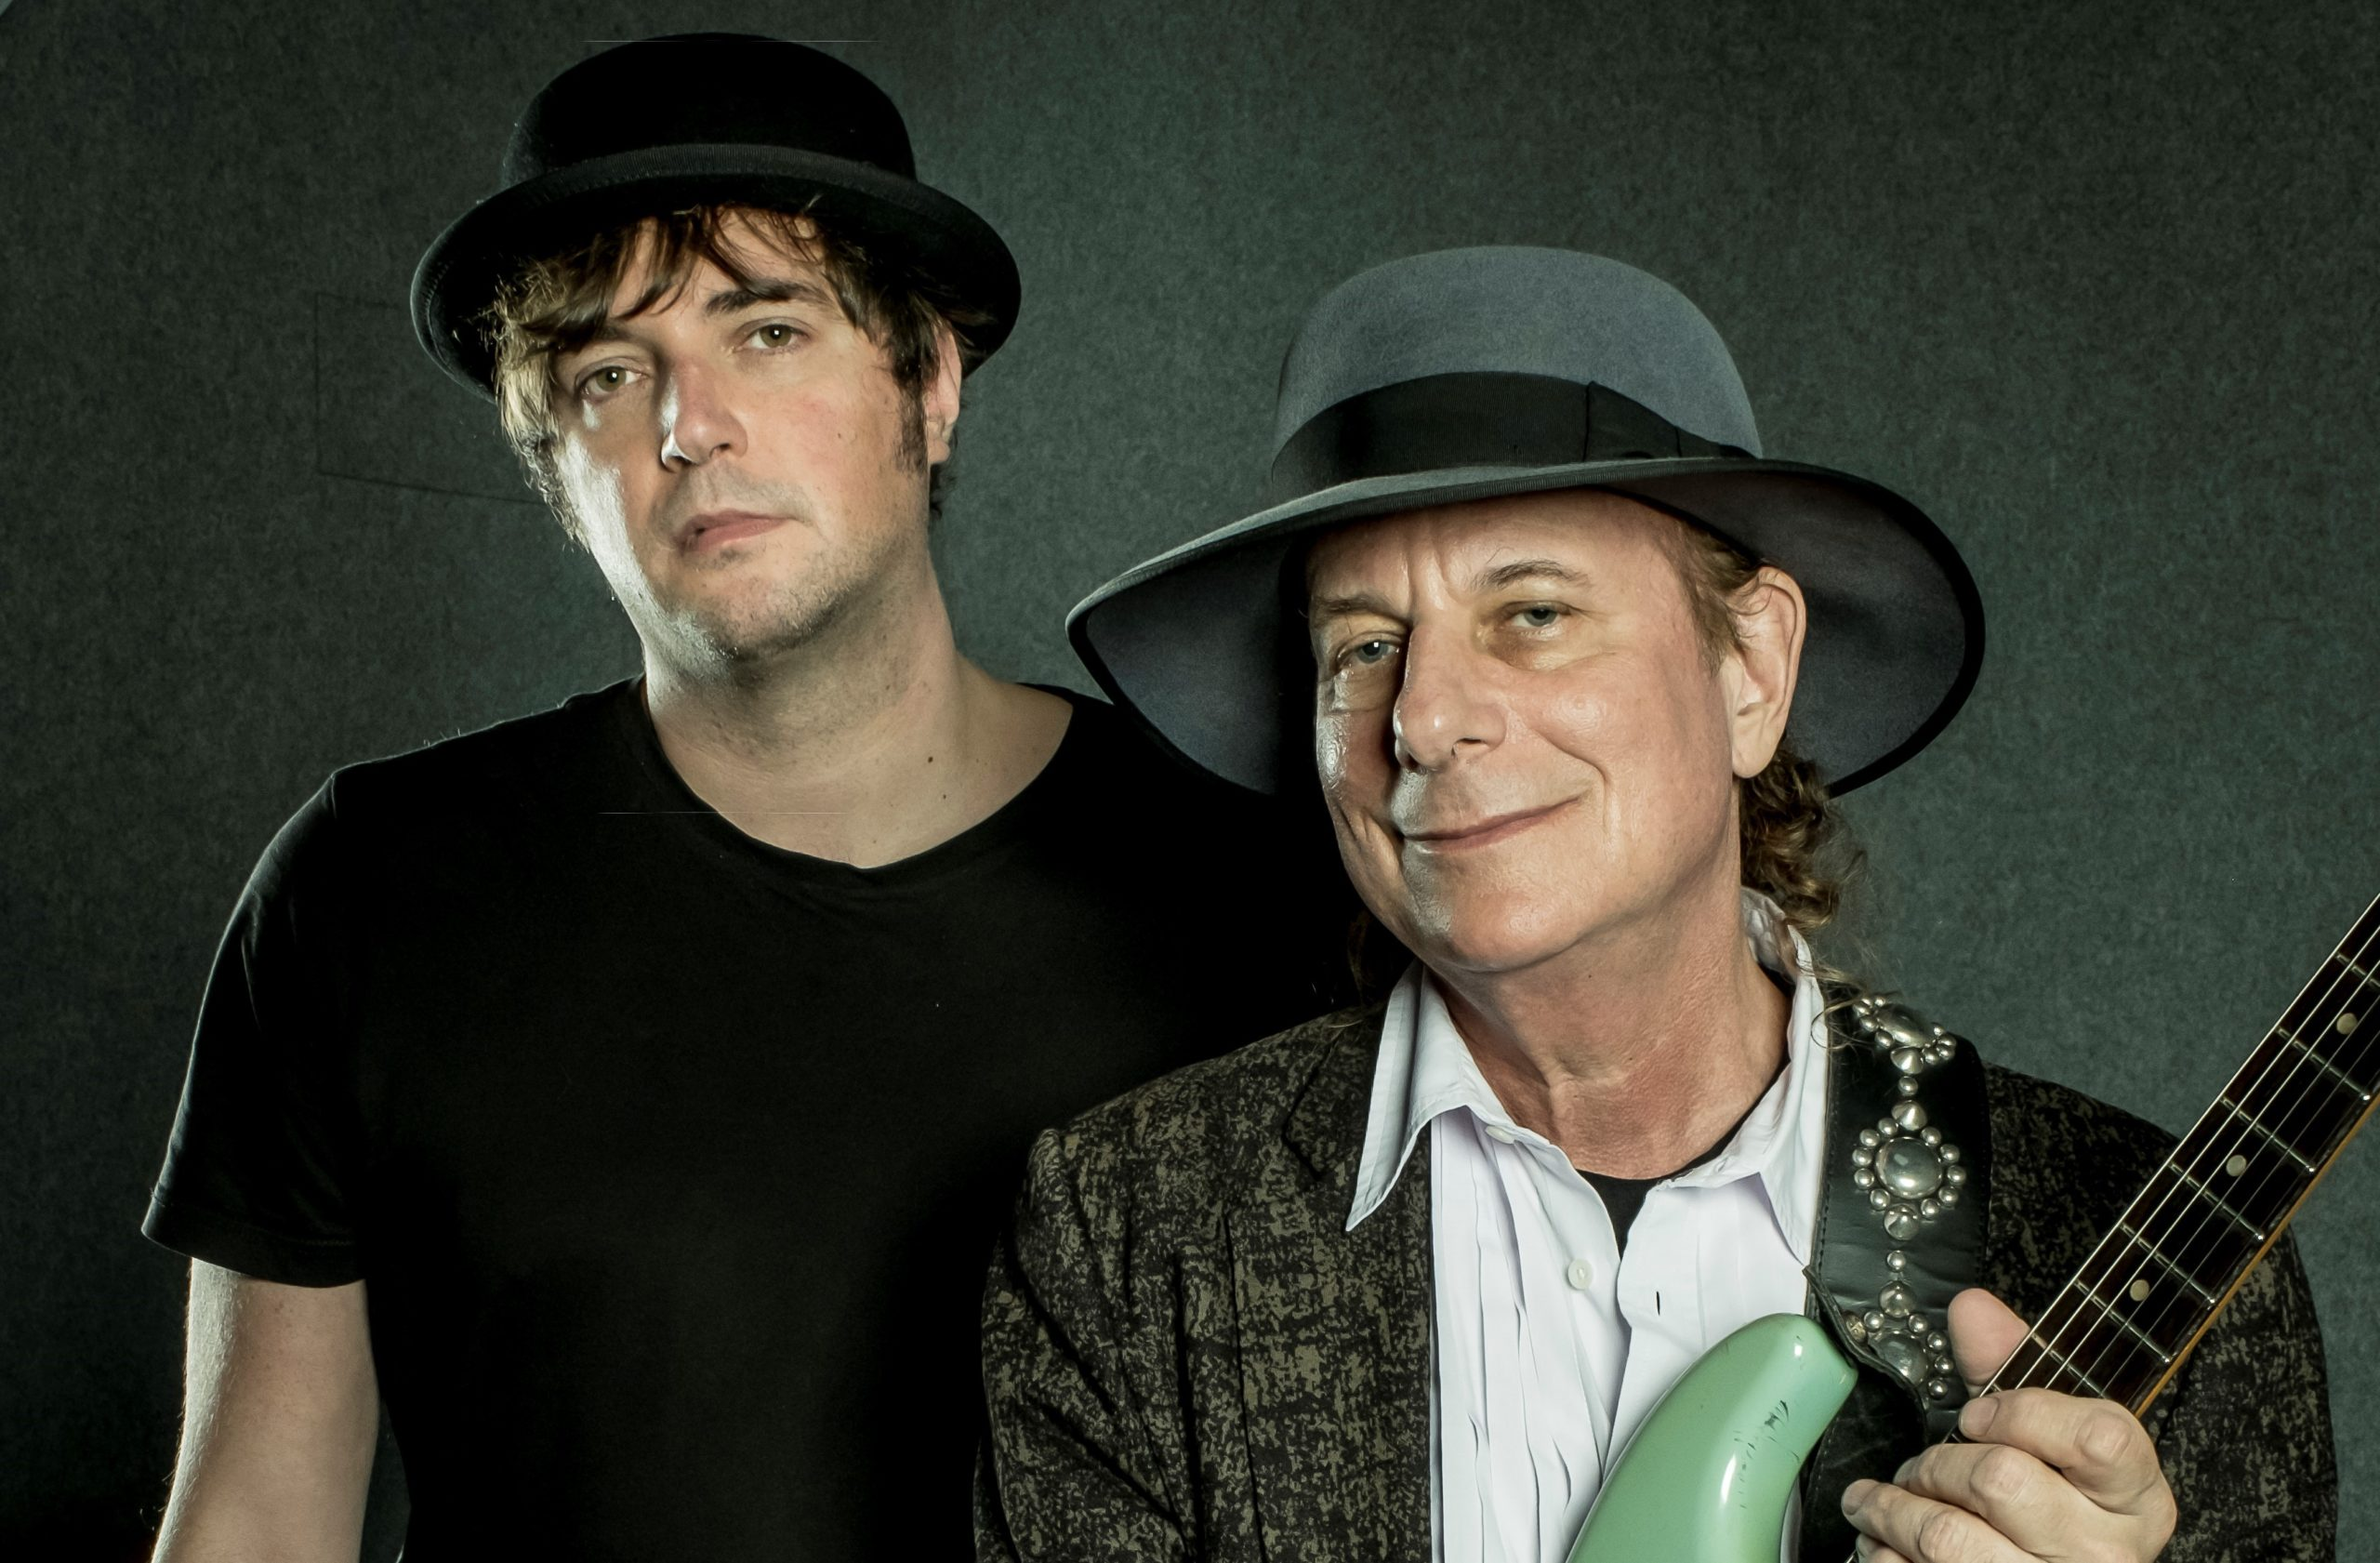 Musica Italiana, Concerti. The Niro & Gary Lucas in tour con il Songbook su Jeff Buckley